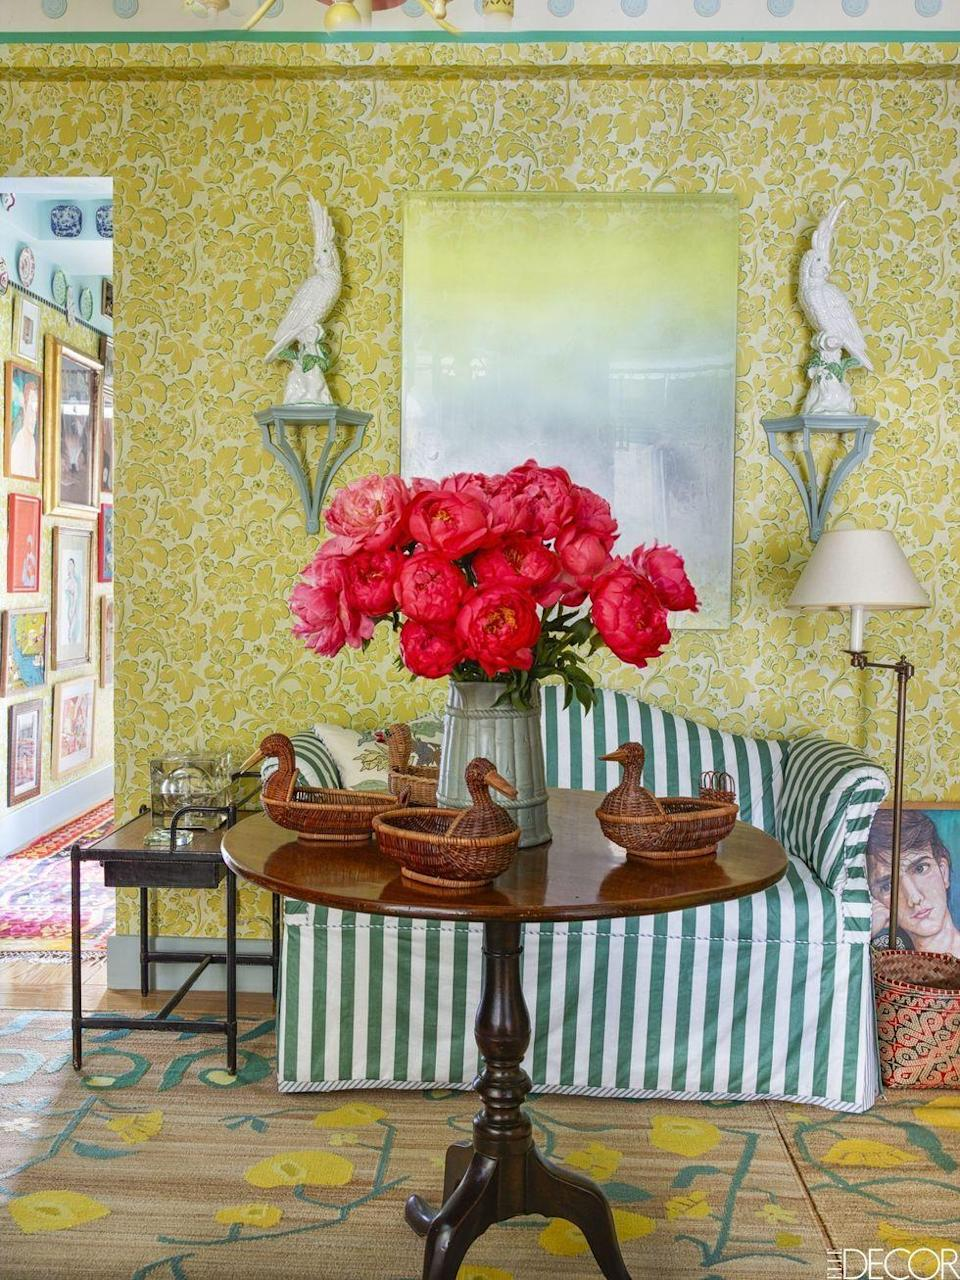 """<p>In the entry hall of a <a href=""""https://www.elledecor.com/design-decorate/house-interiors/a8881/beautiful-new-york-apartment/"""" rel=""""nofollow noopener"""" target=""""_blank"""" data-ylk=""""slk:grand New York apartment"""" class=""""link rapid-noclick-resp"""">grand New York apartment</a>, the settee is covered in a Rose Cumming fabric, the late-18th-century Philadelphia table is a family heirloom, and the hand-painted yellow floral wallpaper is by San Patrignano.</p><p><em>Plume Wallpaper, $98</em><br><a class=""""link rapid-noclick-resp"""" href=""""https://go.redirectingat.com?id=74968X1596630&url=https%3A%2F%2Fwww.anthropologie.com%2Fshop%2Fplume-wallpaper2%3Fcolor%3D071%26size%3DOne%2BSize%26inventoryCountry%3DUS%26countryCode%3DUS%26mrkgcl%3D694%26mrkgadid%3D3339968734%26adtype%3Dpla%26product_id%3D42867457%26adpos%3D1o2%26creative%3D348156566303%26device%3Dc%26network%3Dg%26gclid%3DCjwKCAjw8NfrBRA7EiwAfiVJpYVHaIRrLSd6xXLFbHomsNvPH3SwYuncKT5S03p4TIsyls4F8tWUcxoC9EoQAvD_BwE%26gclsrc%3Daw.ds%26type%3DSTANDARD%26quantity%3D1&sref=https%3A%2F%2Fwww.redbookmag.com%2Fhome%2Fg35083191%2Fwallpaper-design-ideas%2F"""" rel=""""nofollow noopener"""" target=""""_blank"""" data-ylk=""""slk:Shop the Look"""">Shop the Look</a></p>"""